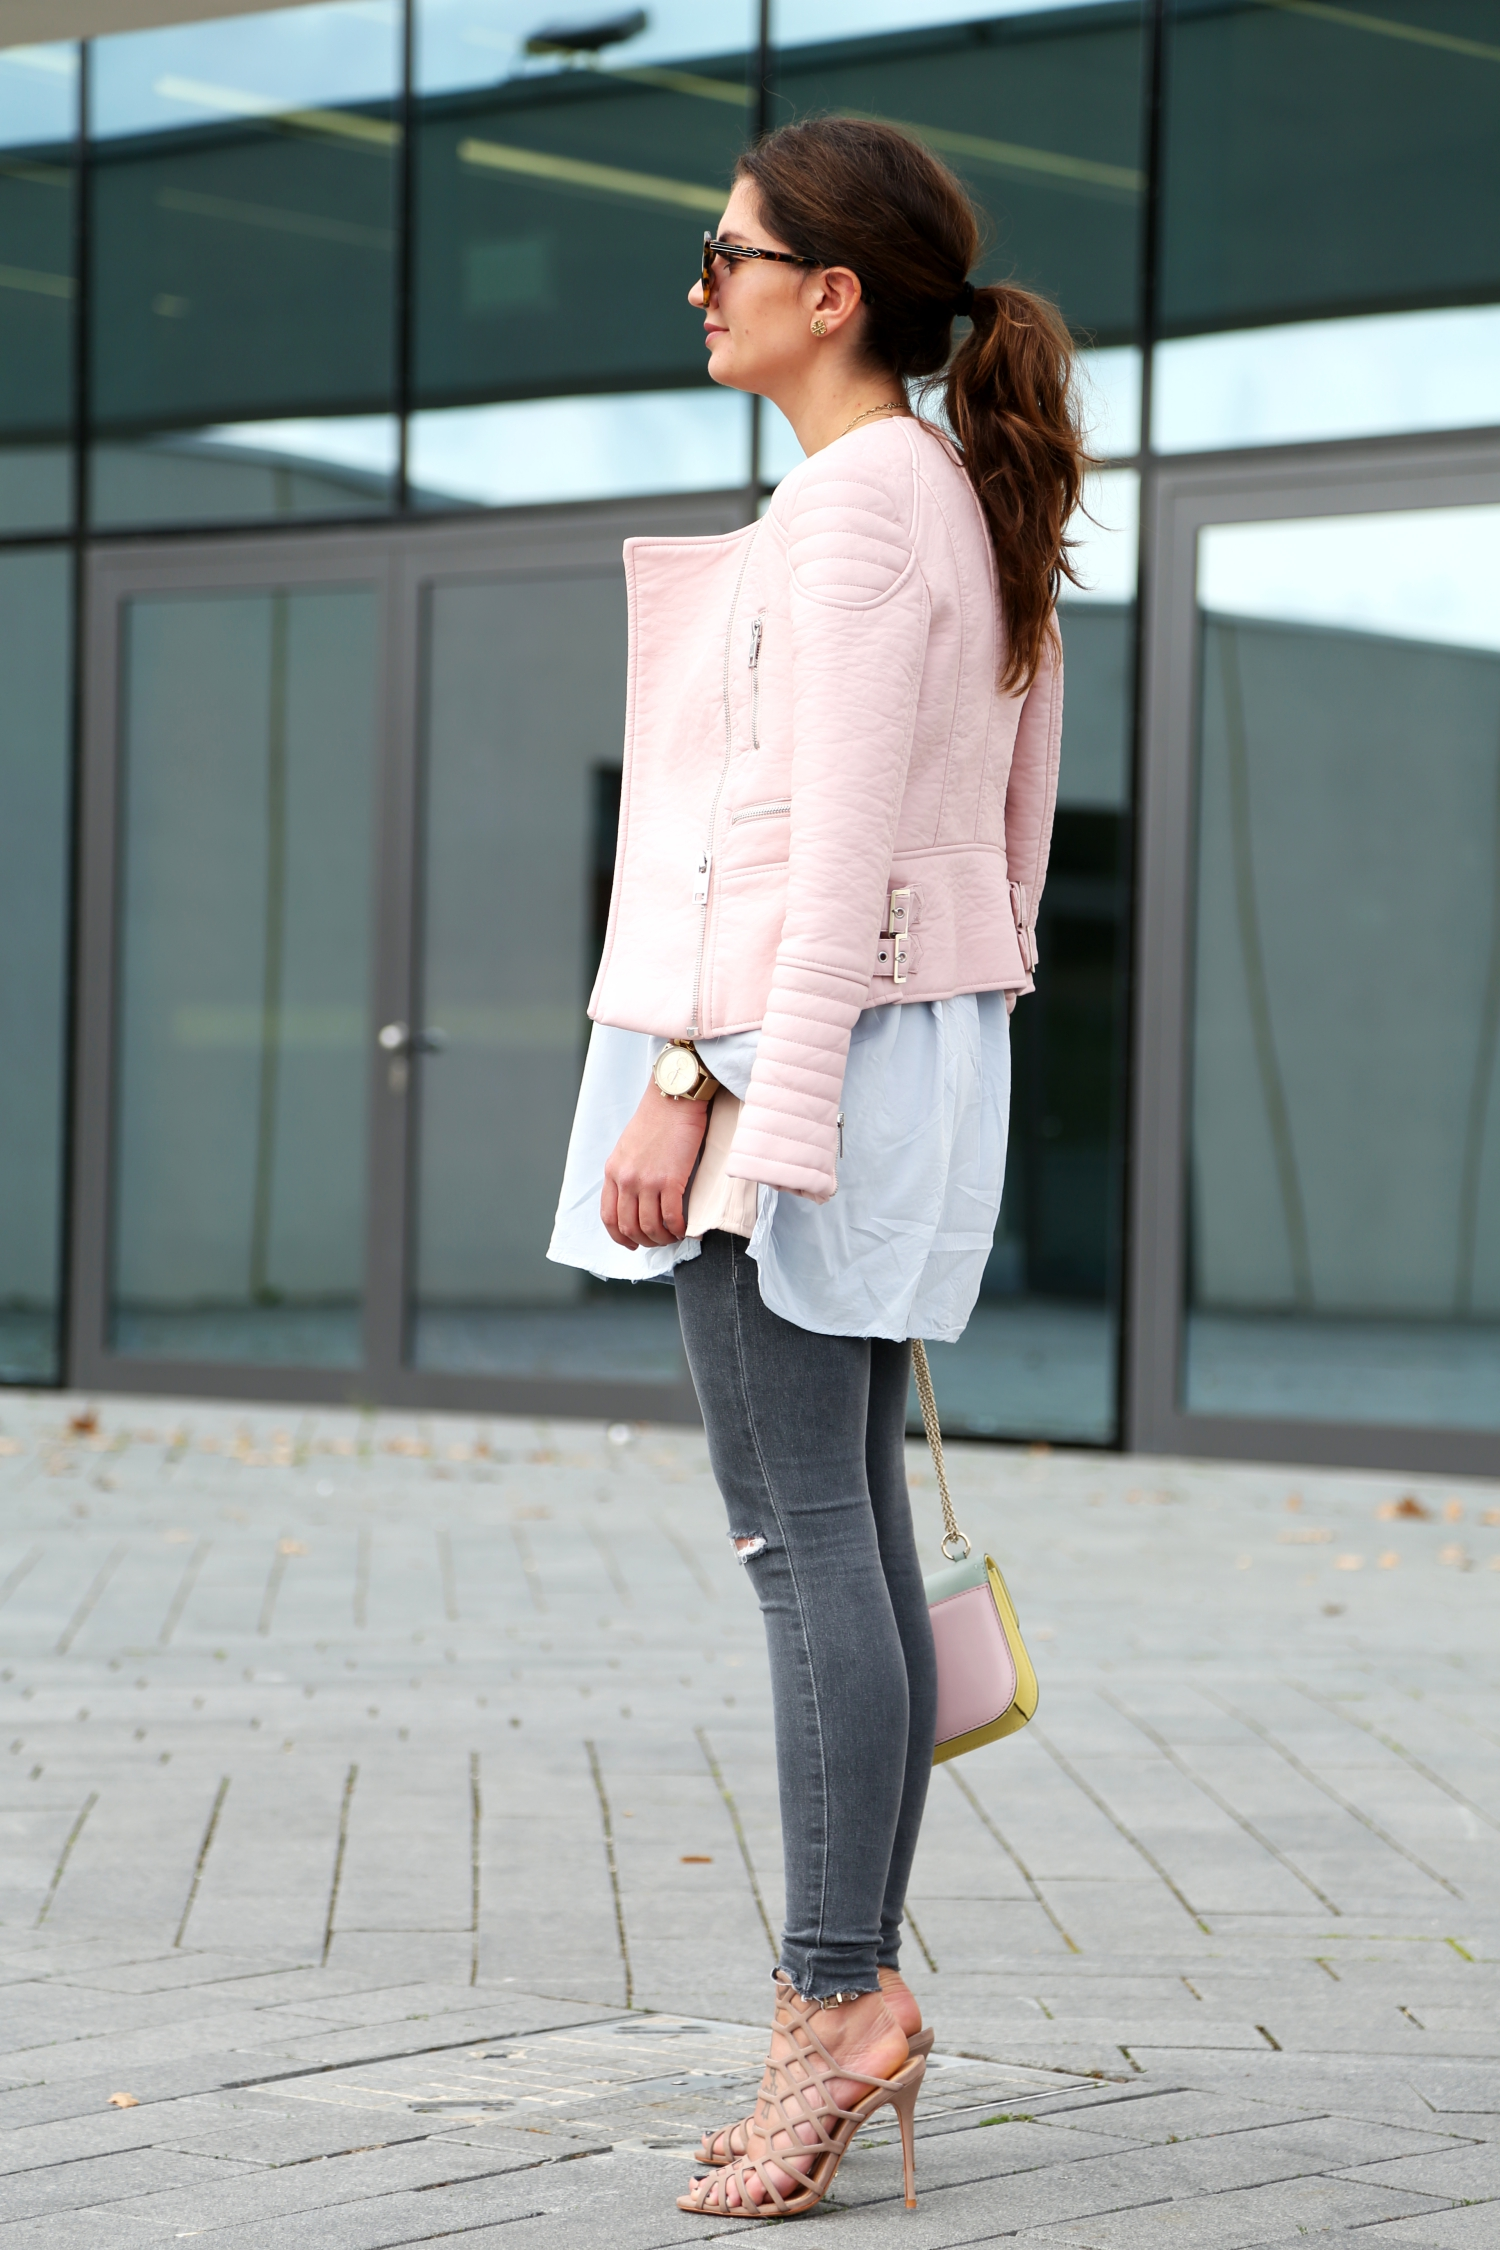 outfit-spring-pastels-valentino-bag-ripped-jeans